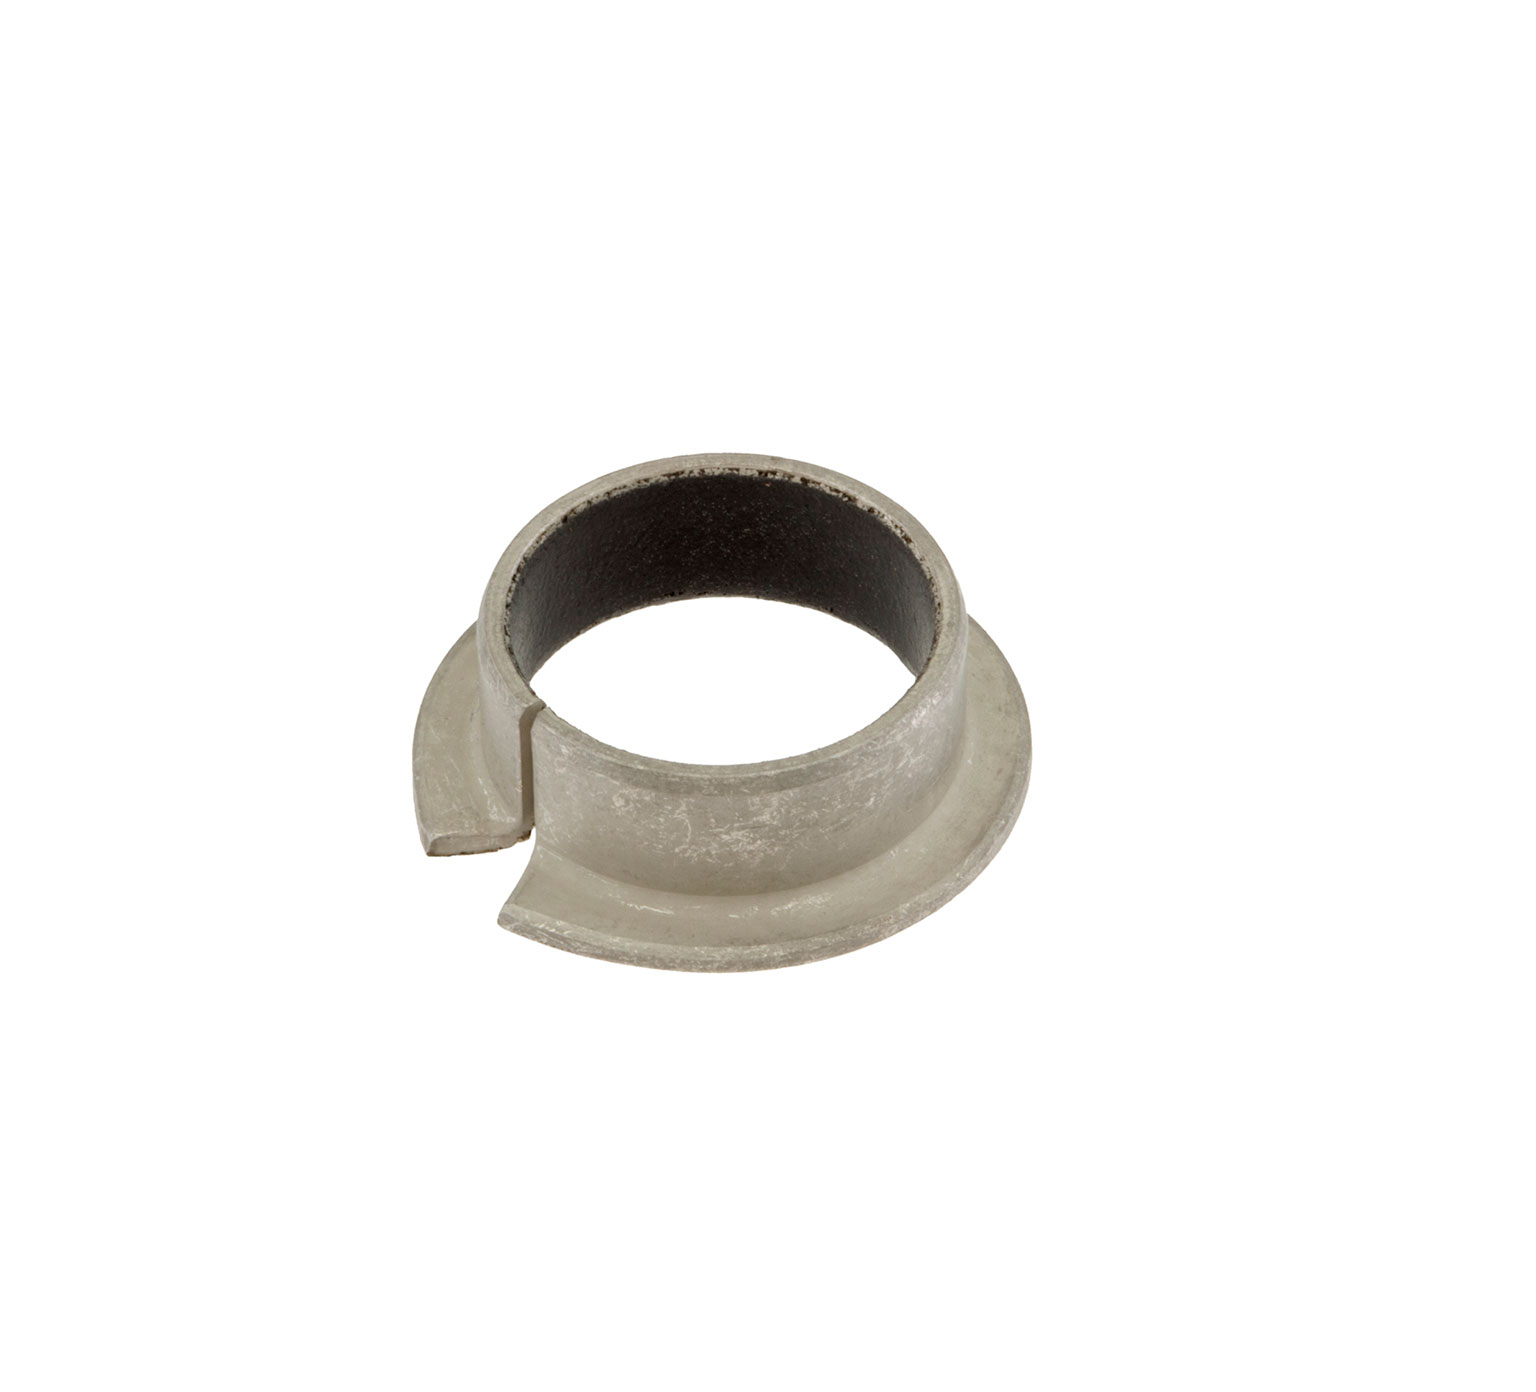 04928 Flange Bushing - 0.7502 ID x 0.355 in alt 1